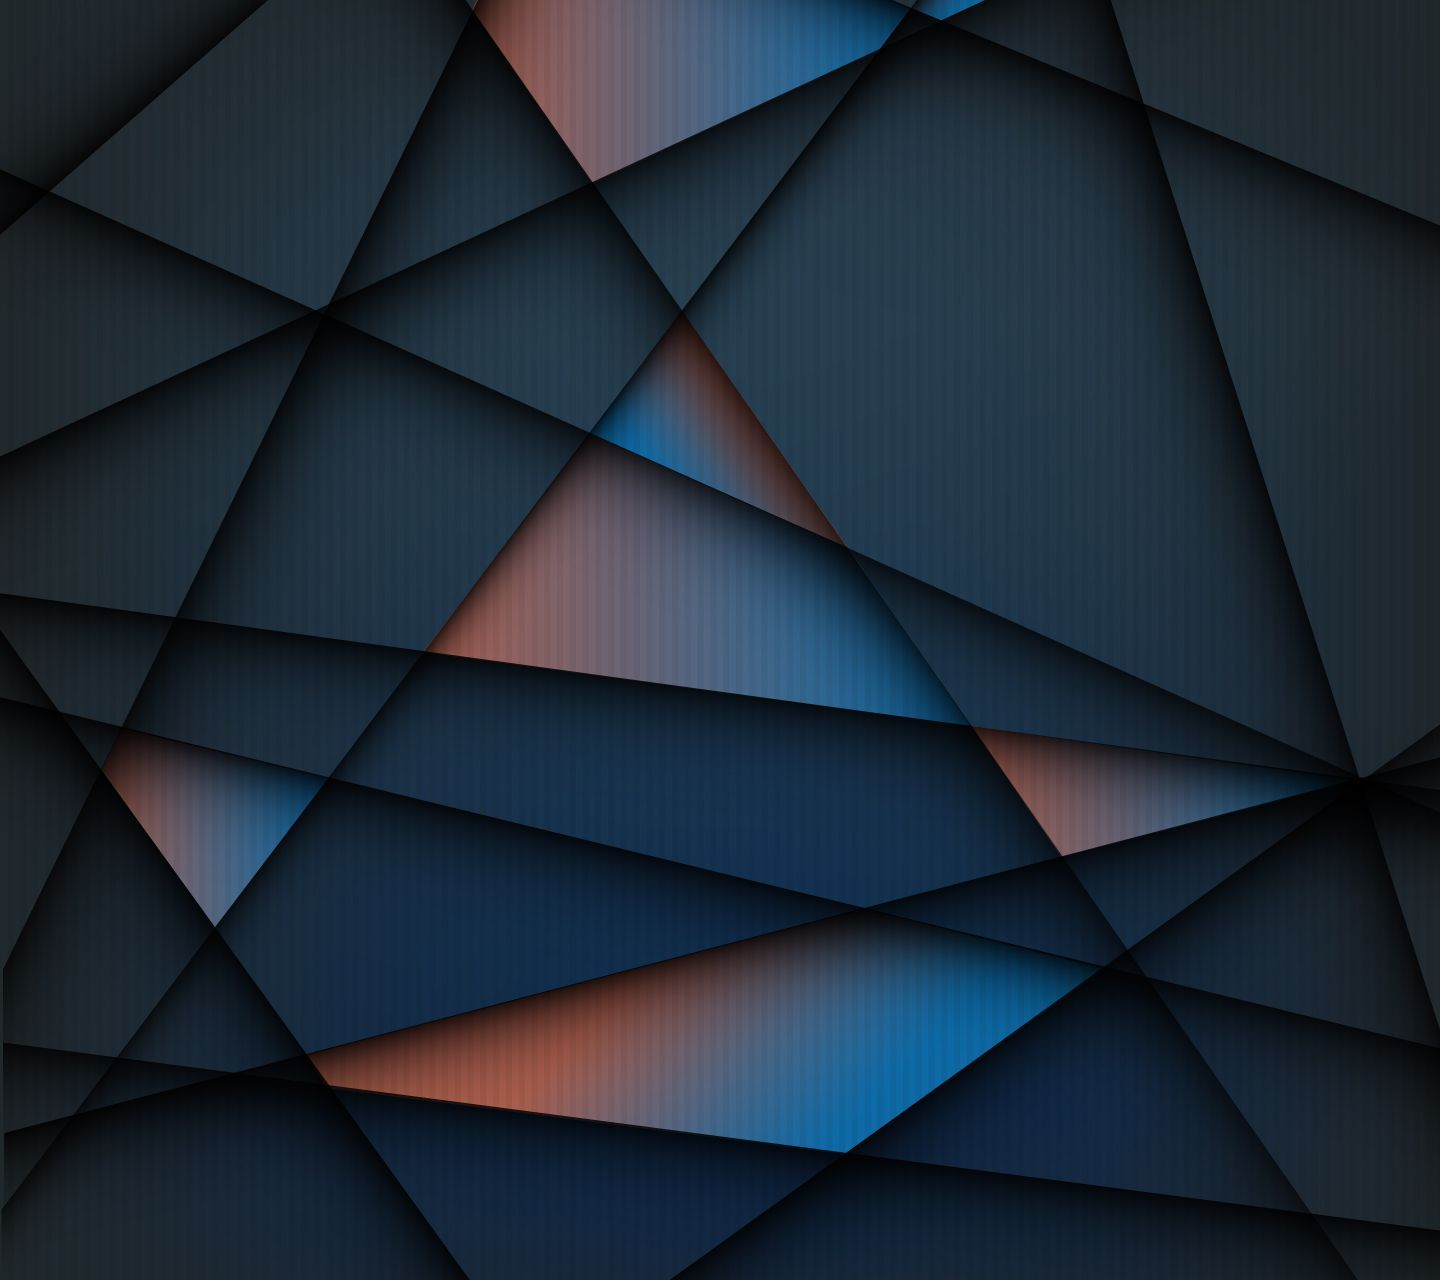 Abstract Wallpaper Phone